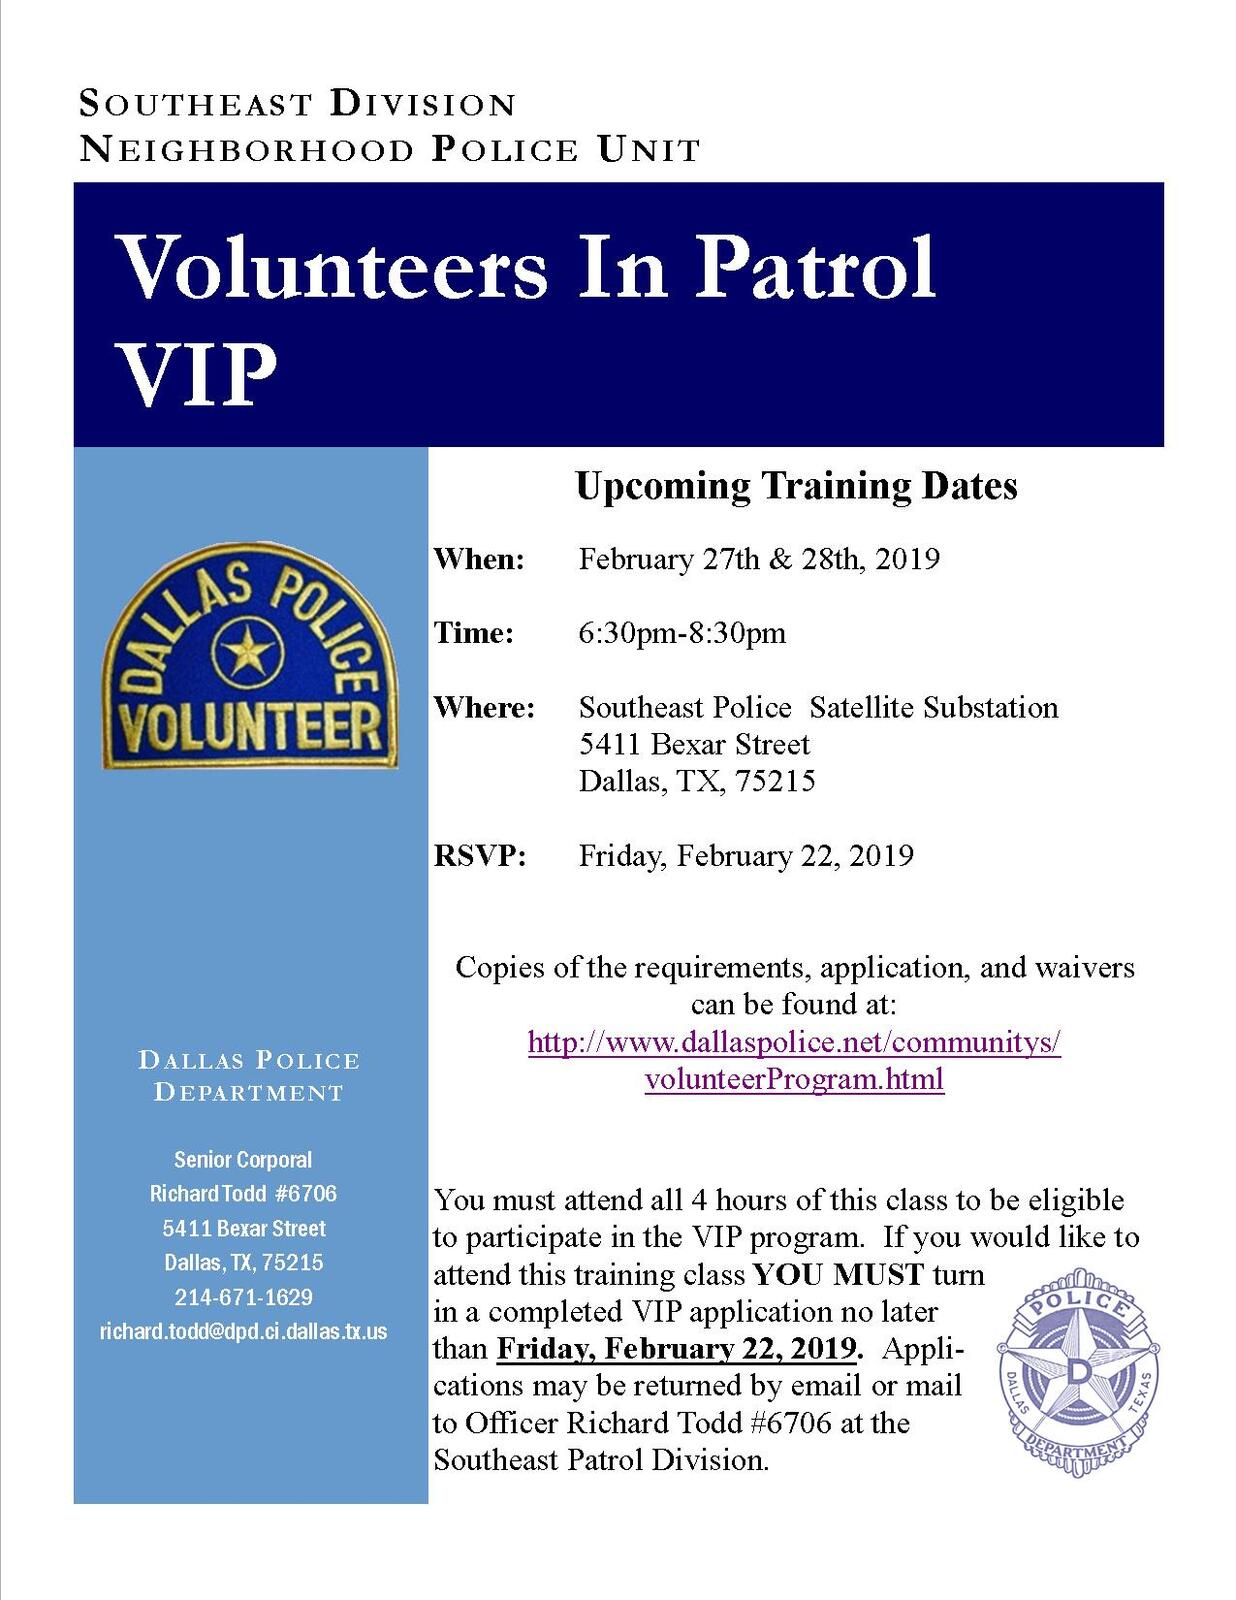 Volunteers In Patrol Training (Dallas Police Department